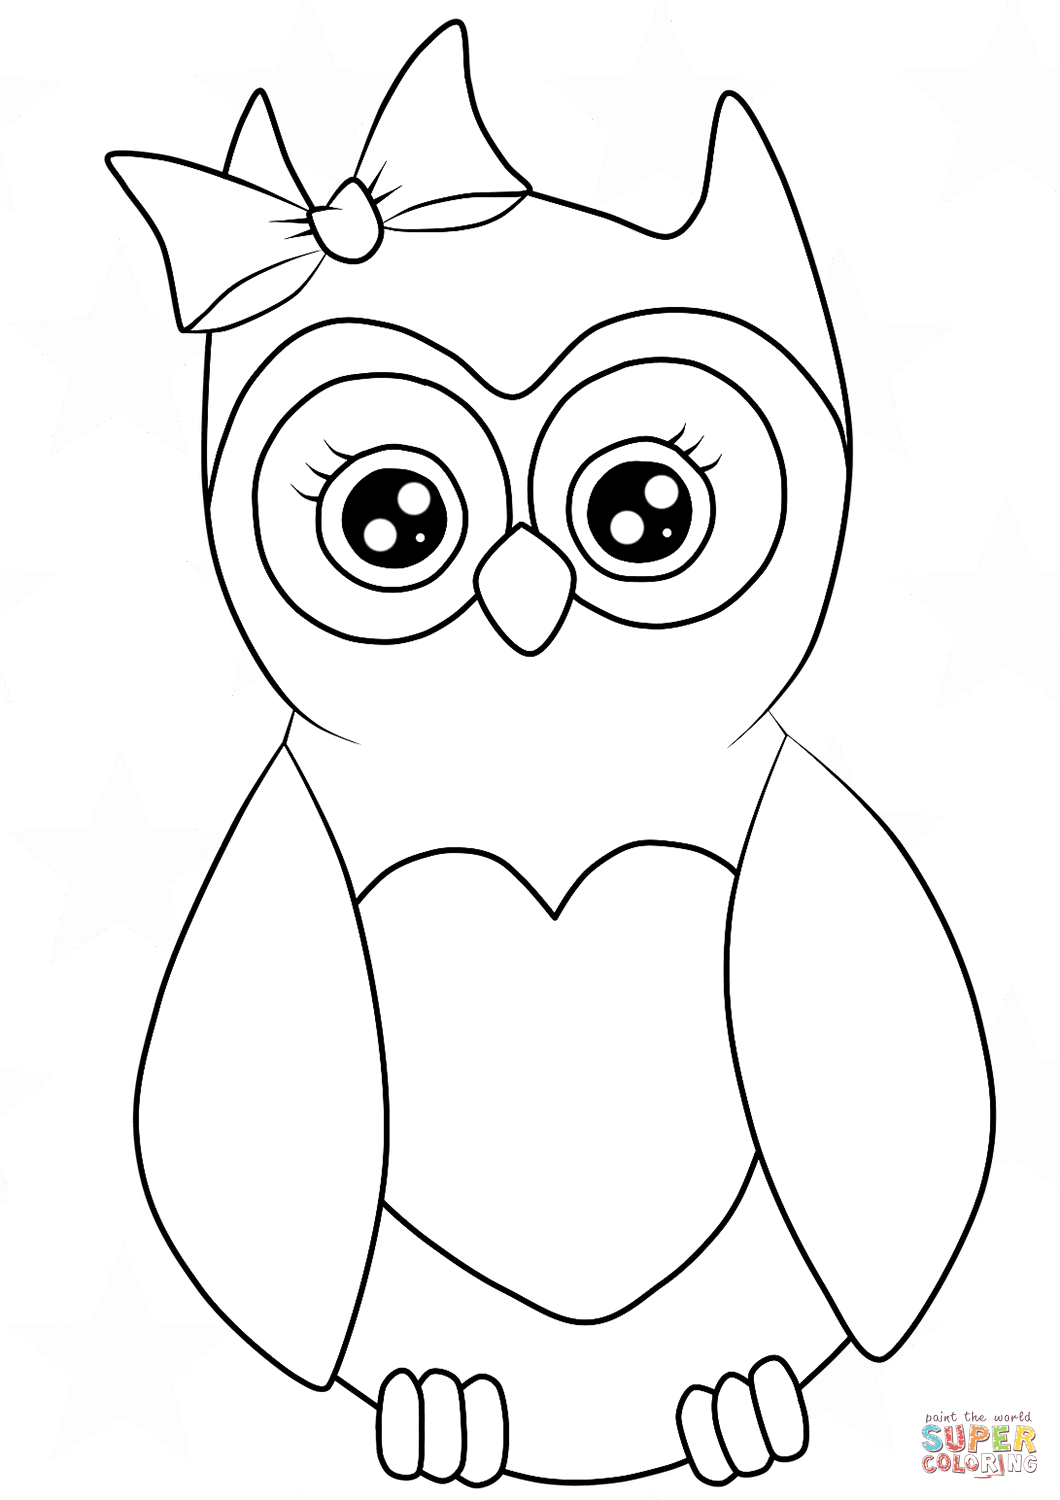 Pin By Maryfranco On Preschool Ideas Owl Coloring Pages Bird Coloring Pages Shark Coloring Pages